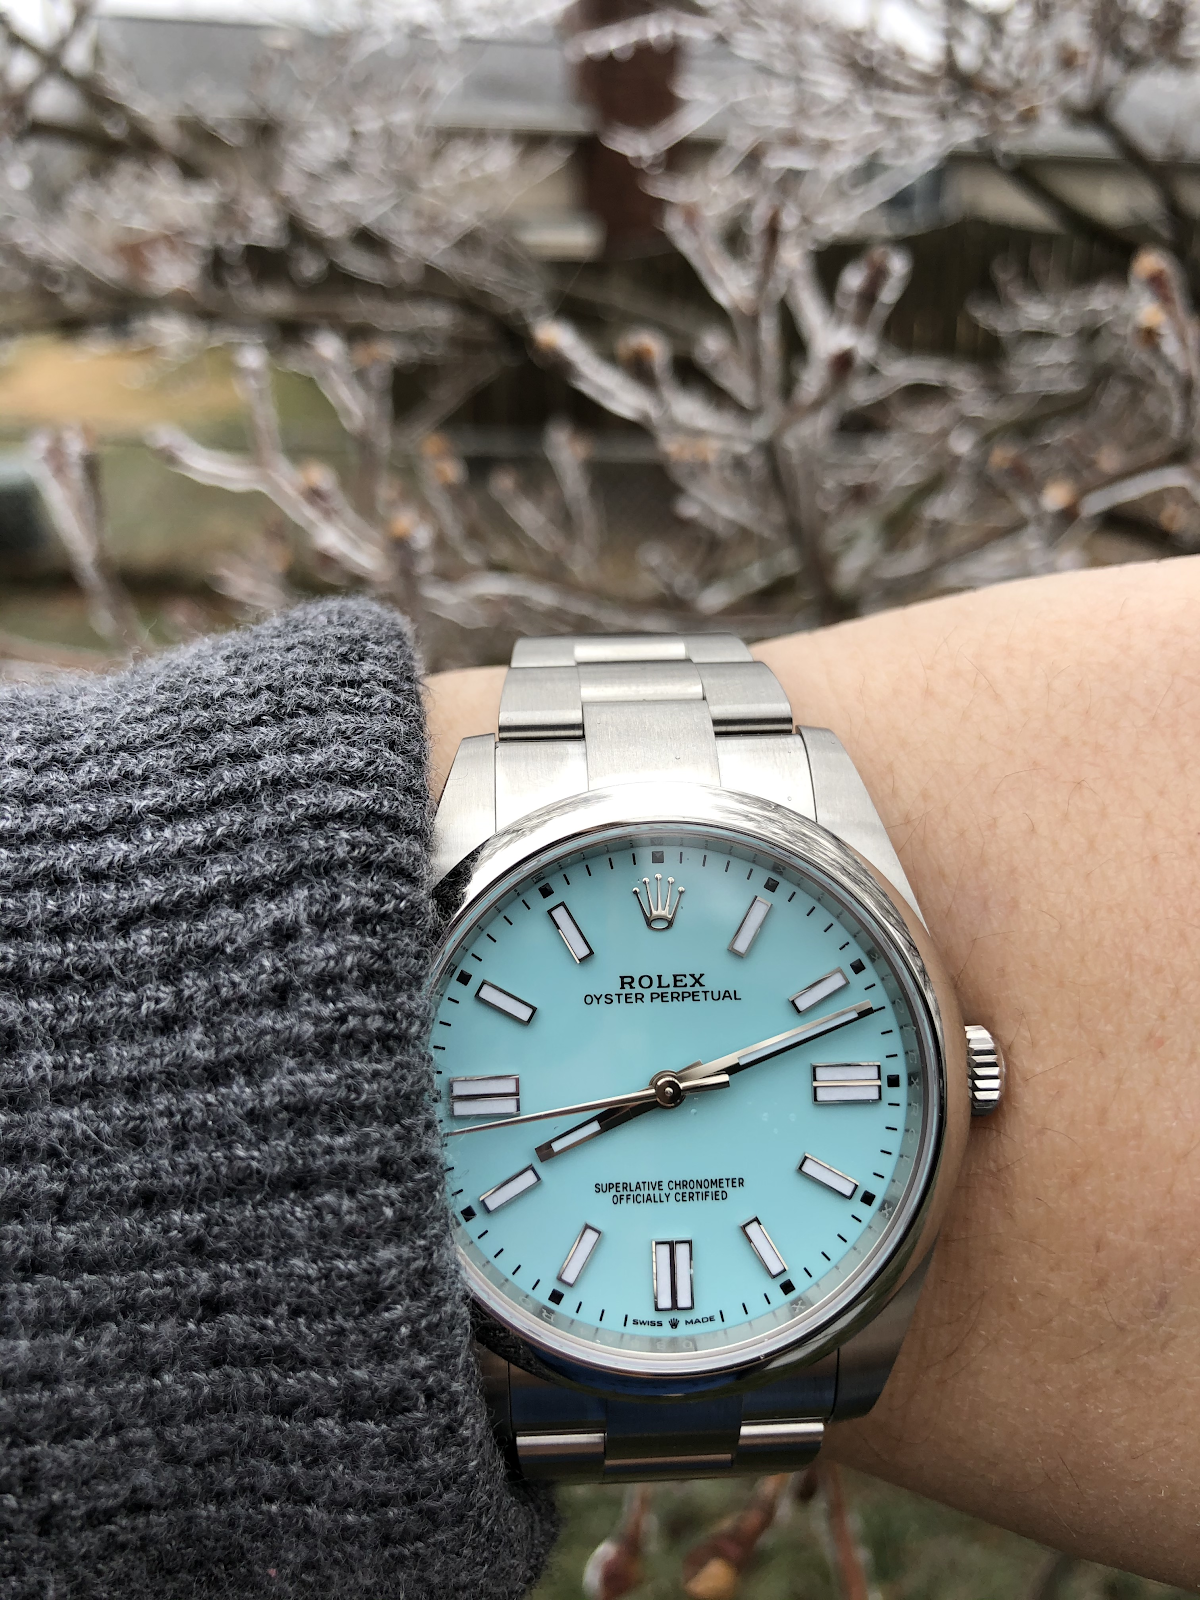 rolex op41 in turquoise blue with snowy background